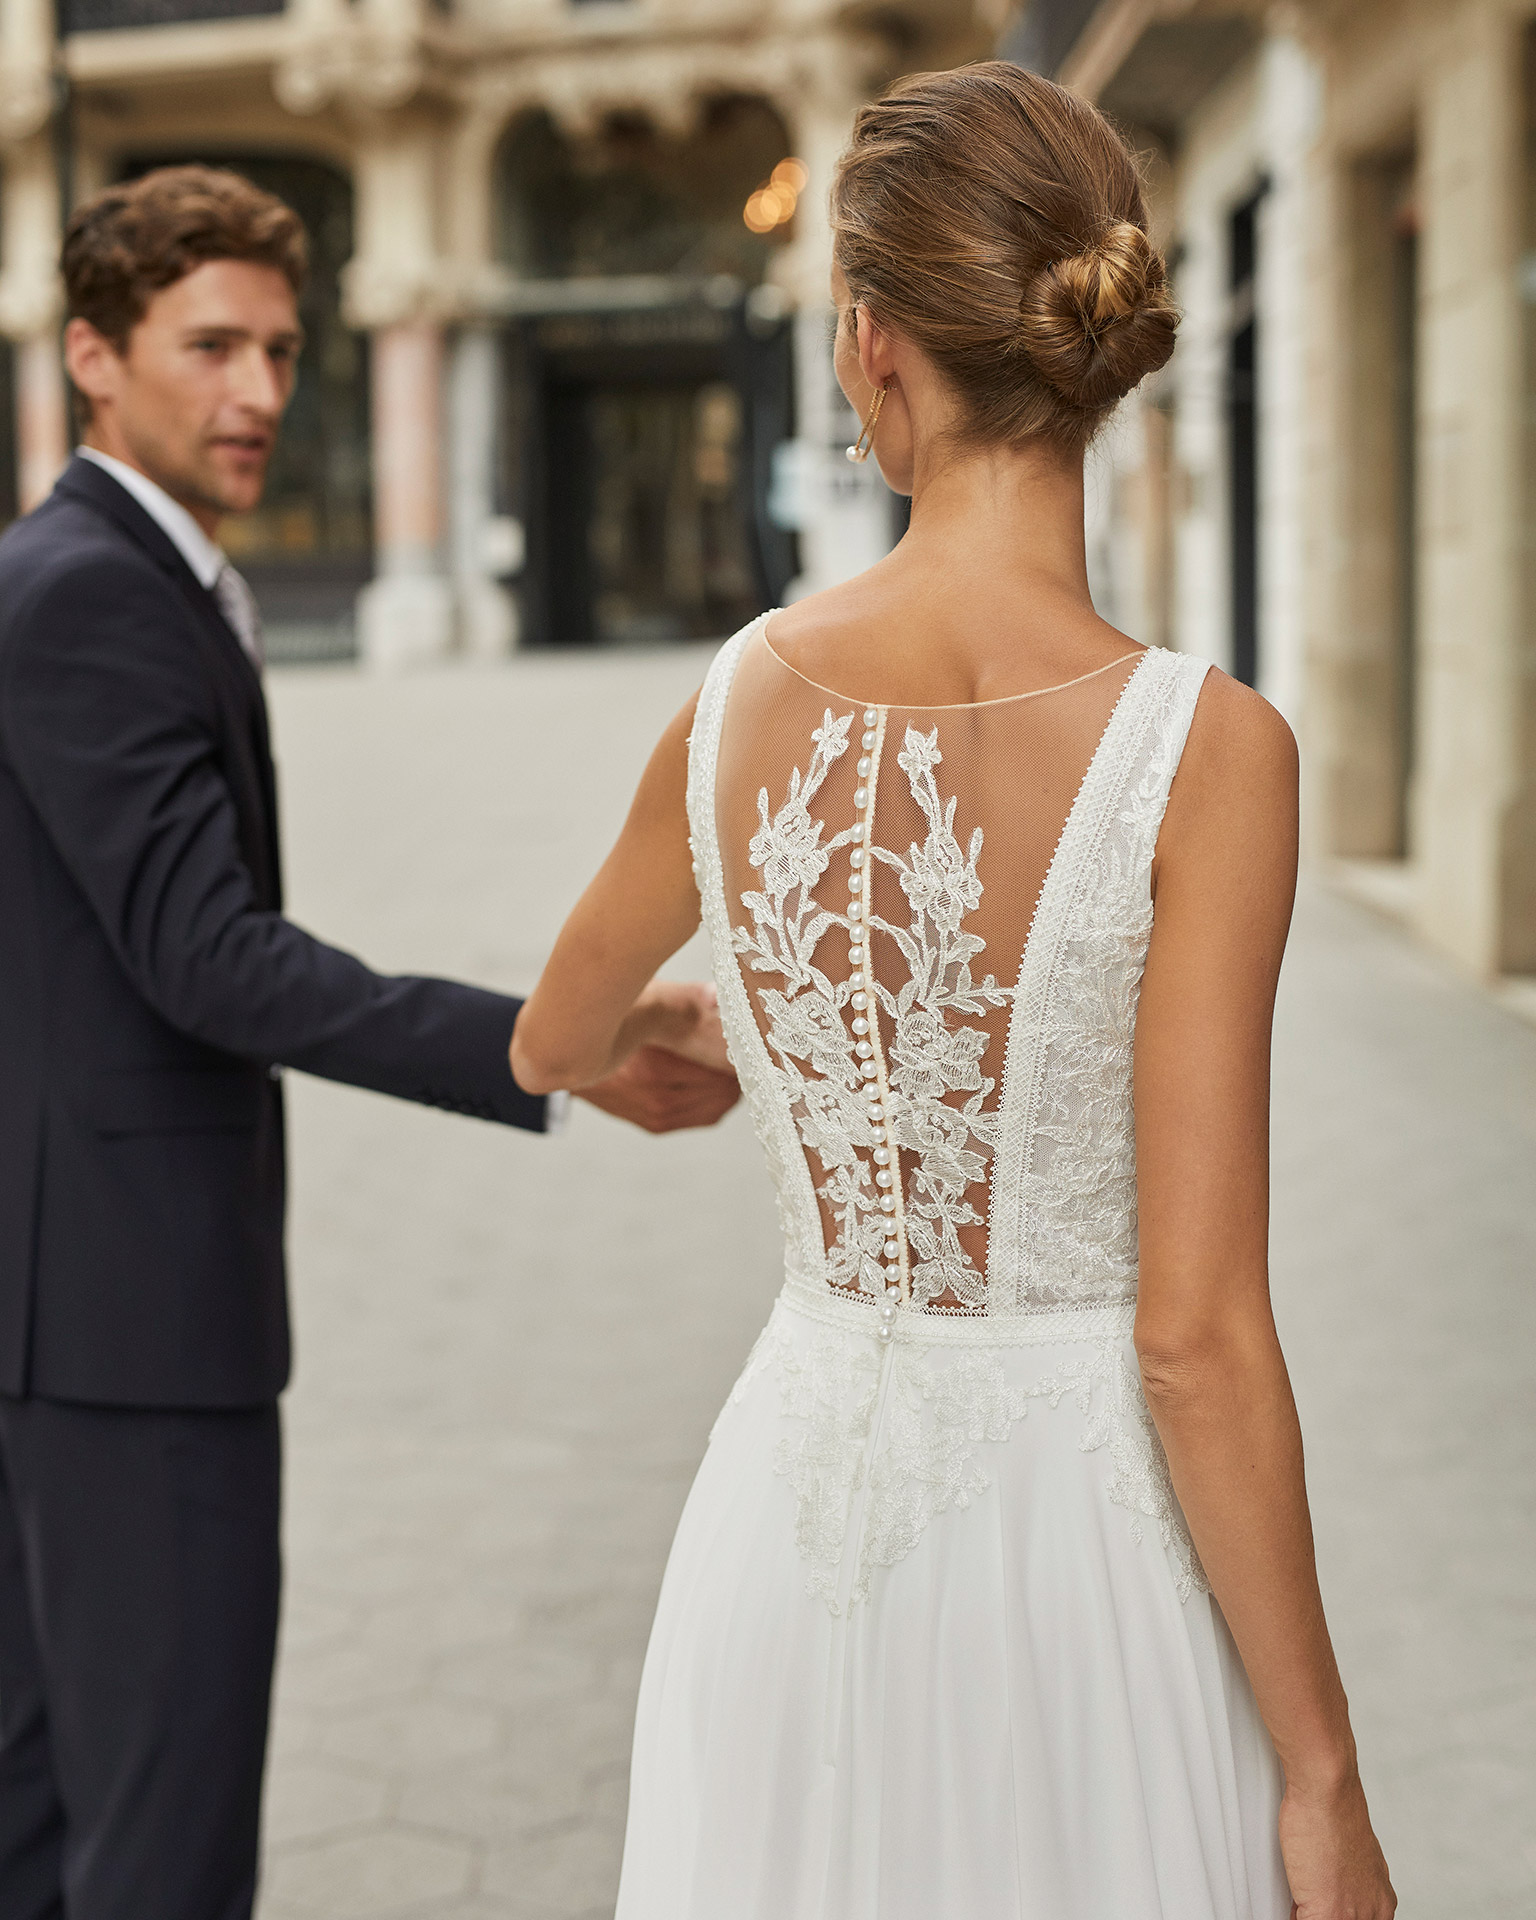 Lightweight wedding dress in georgette and beaded lace. Deep-plunge neckline, square back with lace appliqué. 2022  Collection.